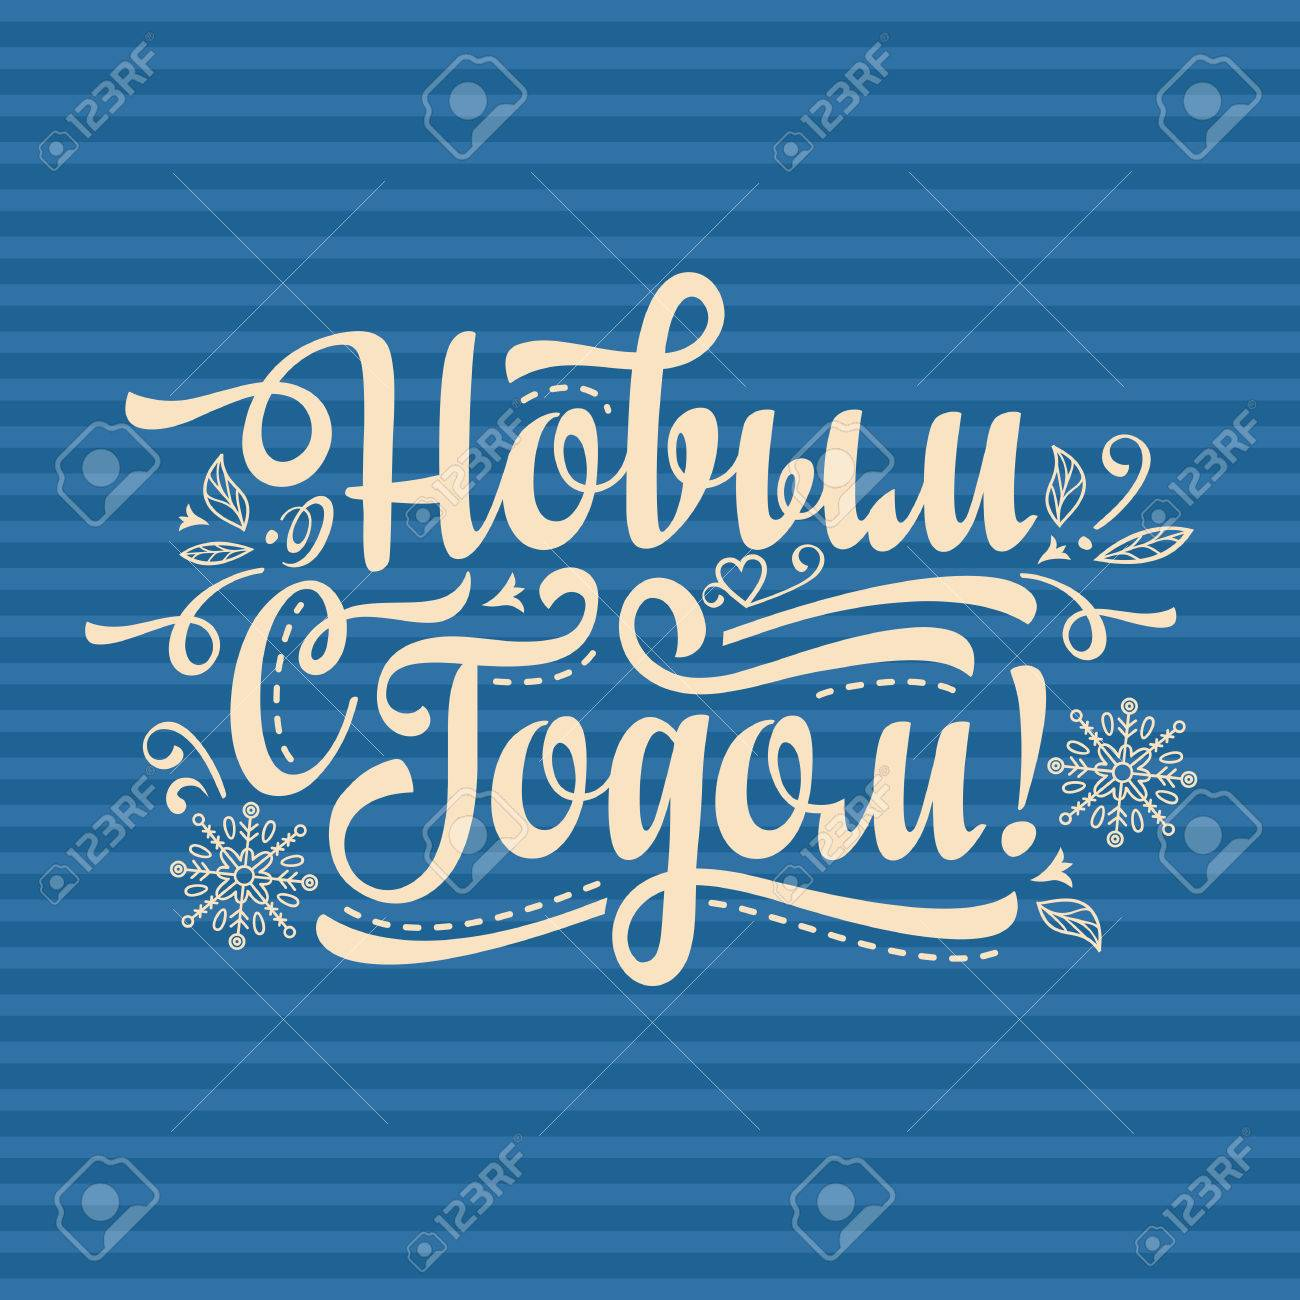 new year card holiday background phrase in russian language warm wishes for happy